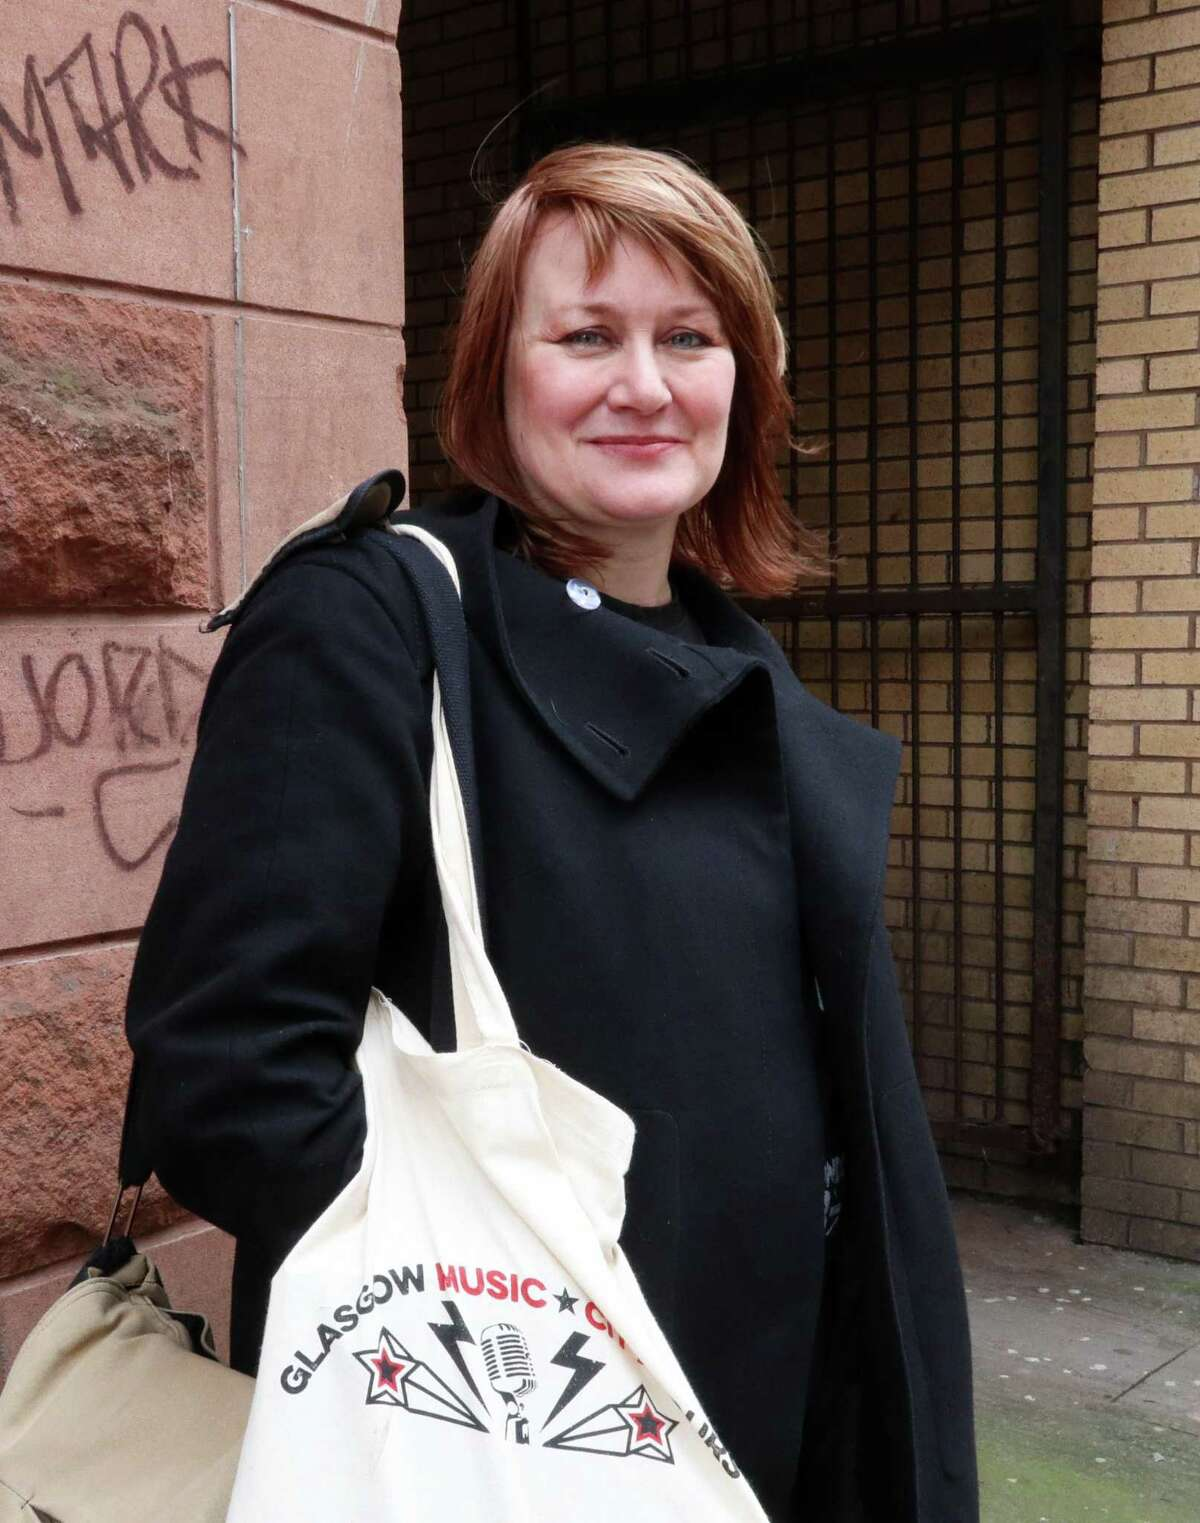 """""""Everyone in Glasgow likes to sing,"""" says Alison Stroak, marketing director for Glasgow Music City Tours. """"We decided we wanted to shout about our music scene."""""""